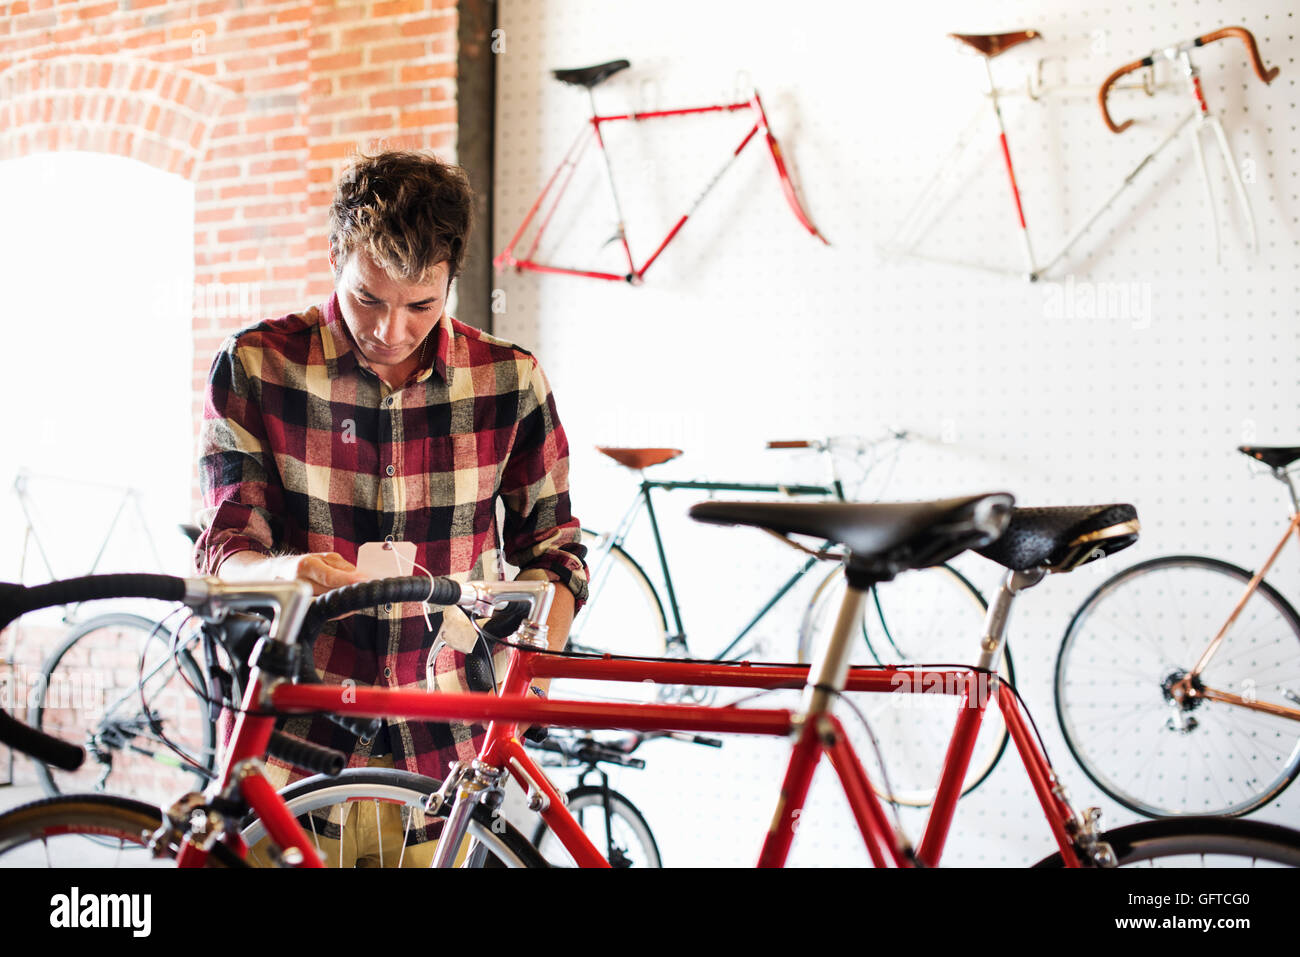 A man in a cycle shop reading the price label on a bike - Stock Image